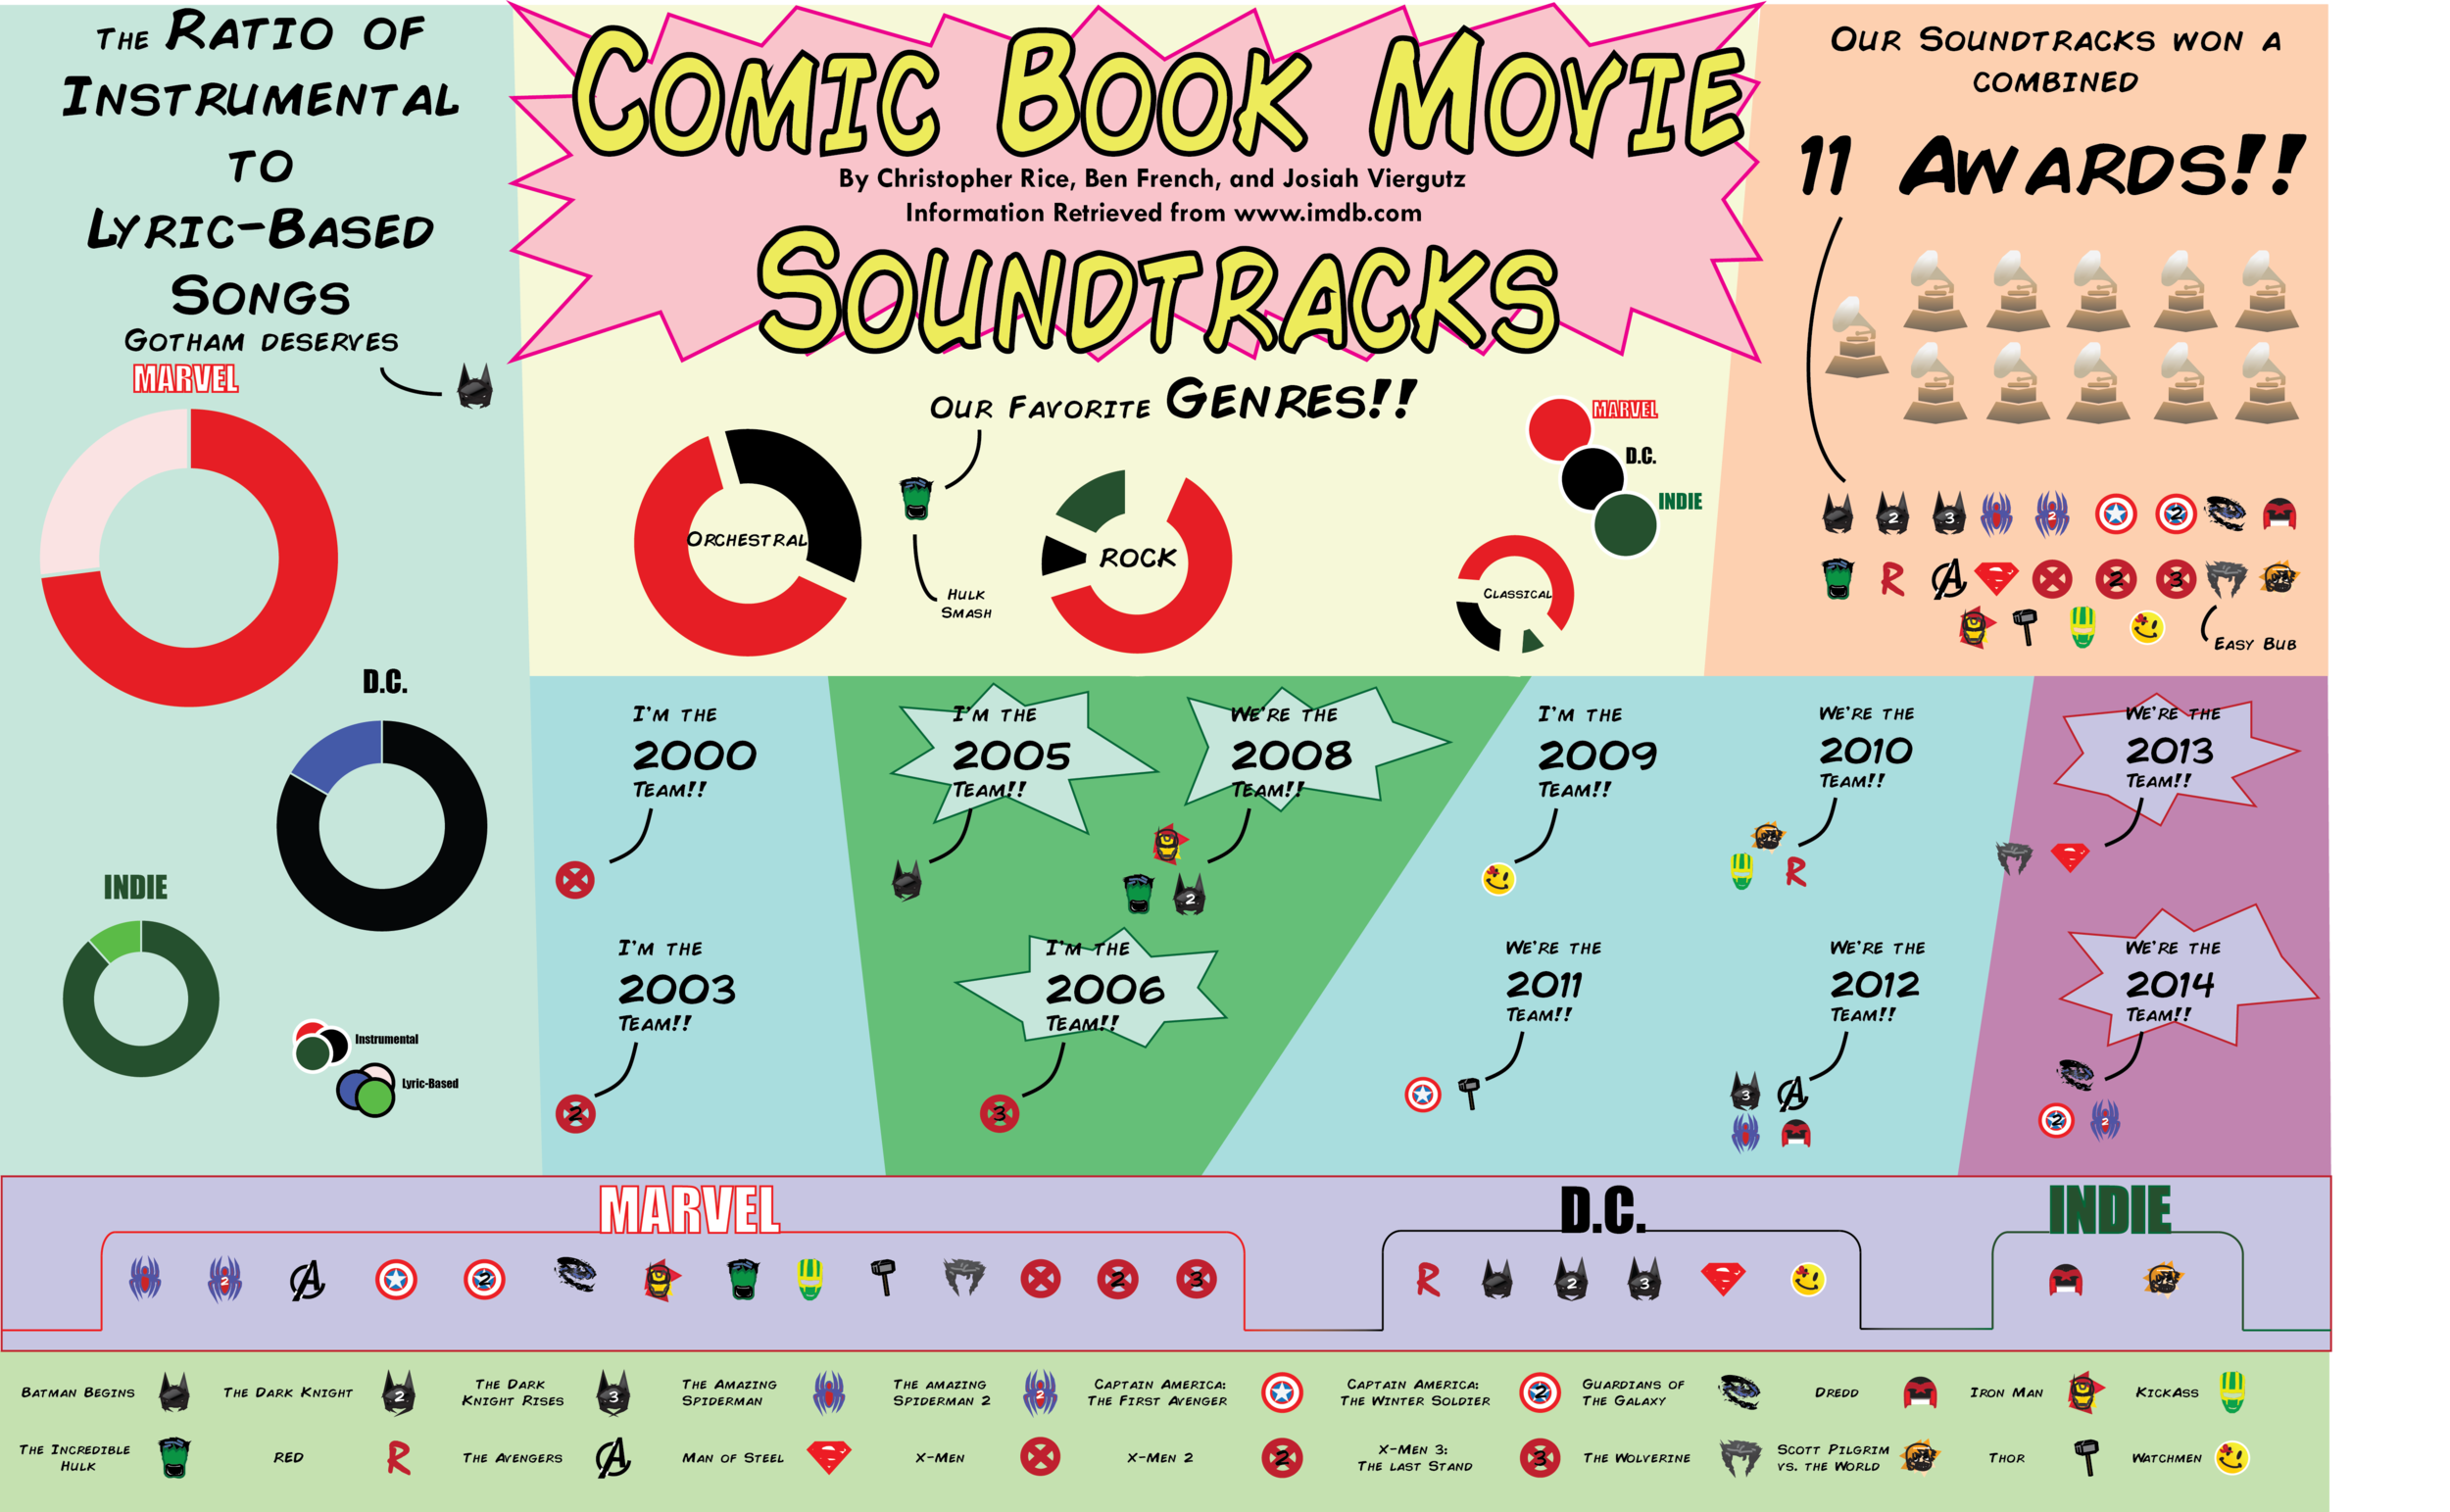 Comic book movie soundtracks infographic     The intent of this project was to create an infographic based off of comic book movie soundtracks. For this project, we completed topic research, created graphics, used appropriate typography and designed the infographic in a clear and organized manner.